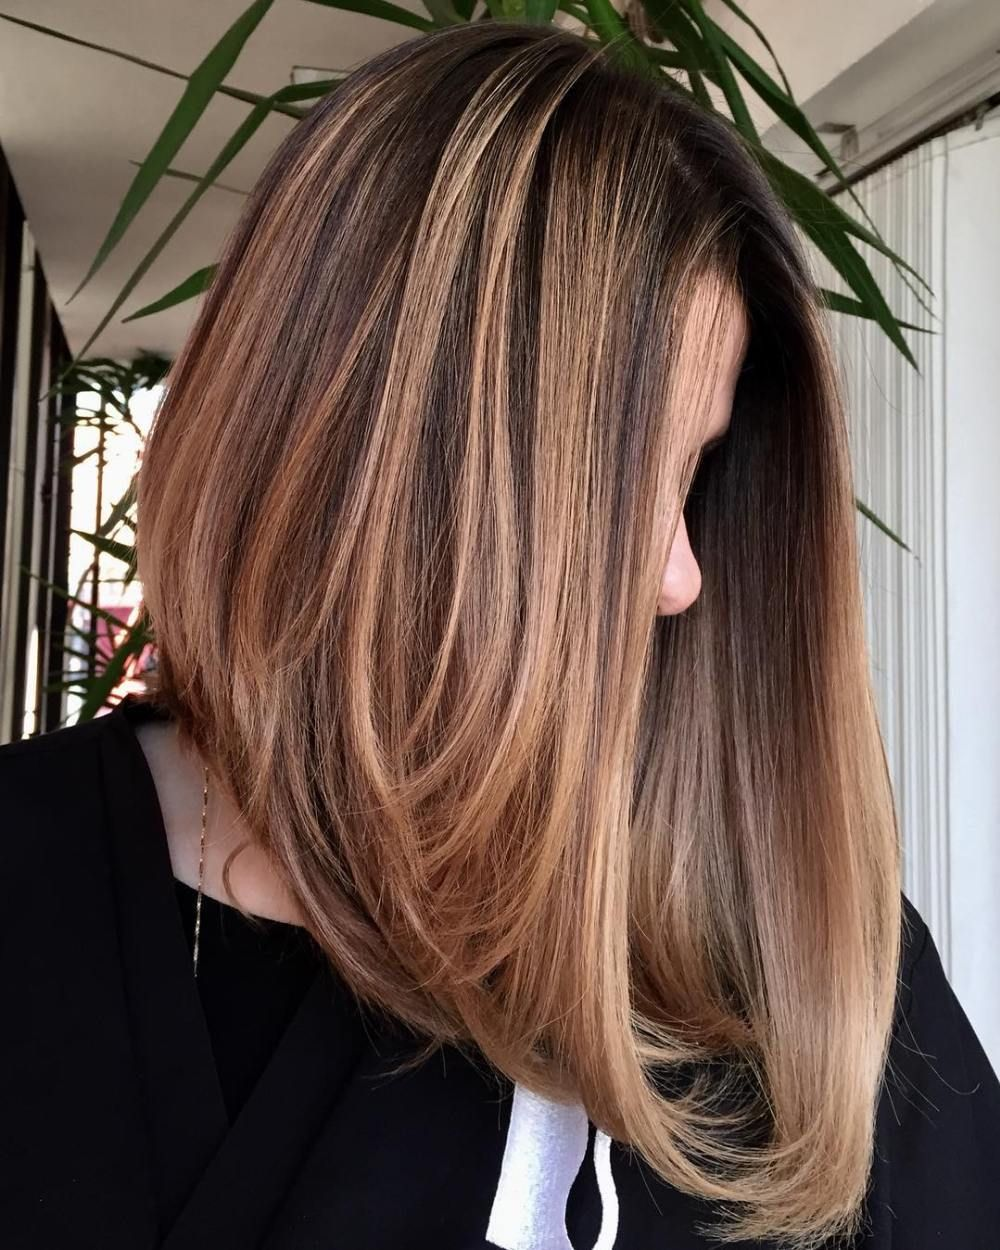 20 Chic Long Inverted Bobs To Inspire Your 2019 Makeover Angled Bob Hairstyles Inverted Long Bob Inverted Bob Hairstyles